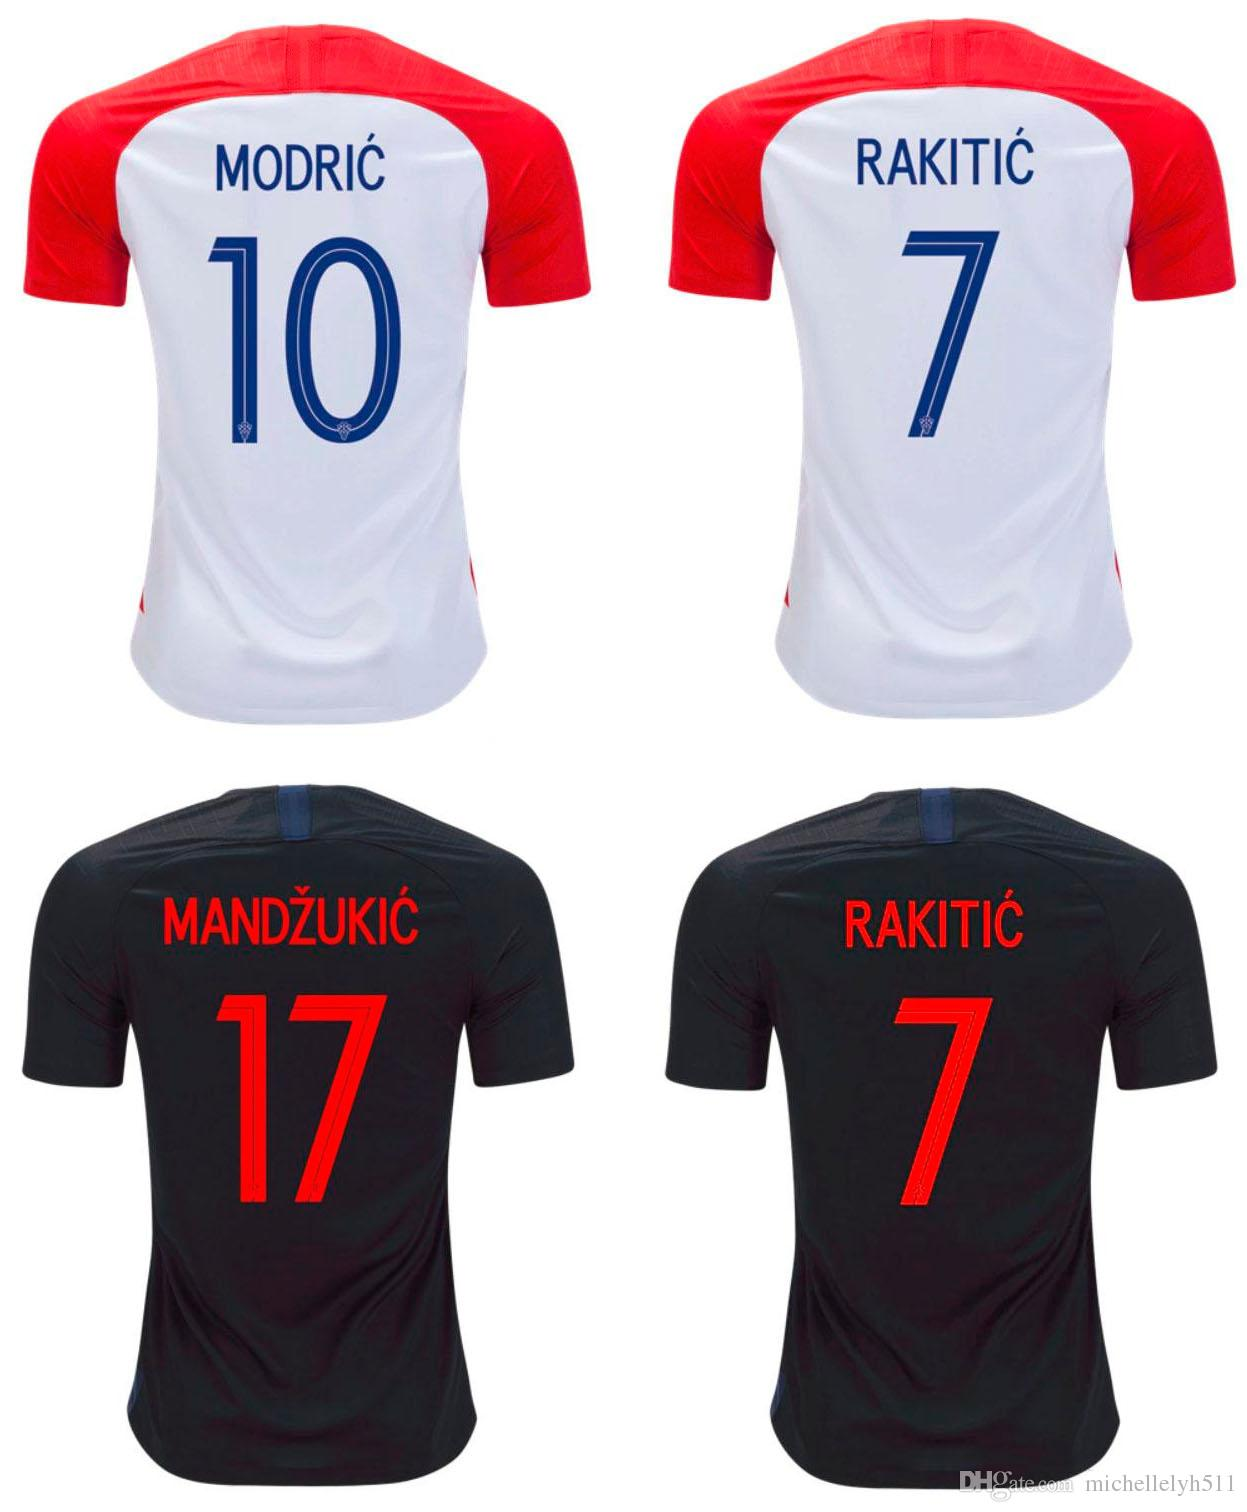 2019 2018 Hrvatska Soccer Jersey MODRIC PERISIC RAKITIC MANDZUKIC National  Team Football Shirts World Cup 2018 Hrvatska Home Away Soccer Uniforms From  ... acecf8b5b